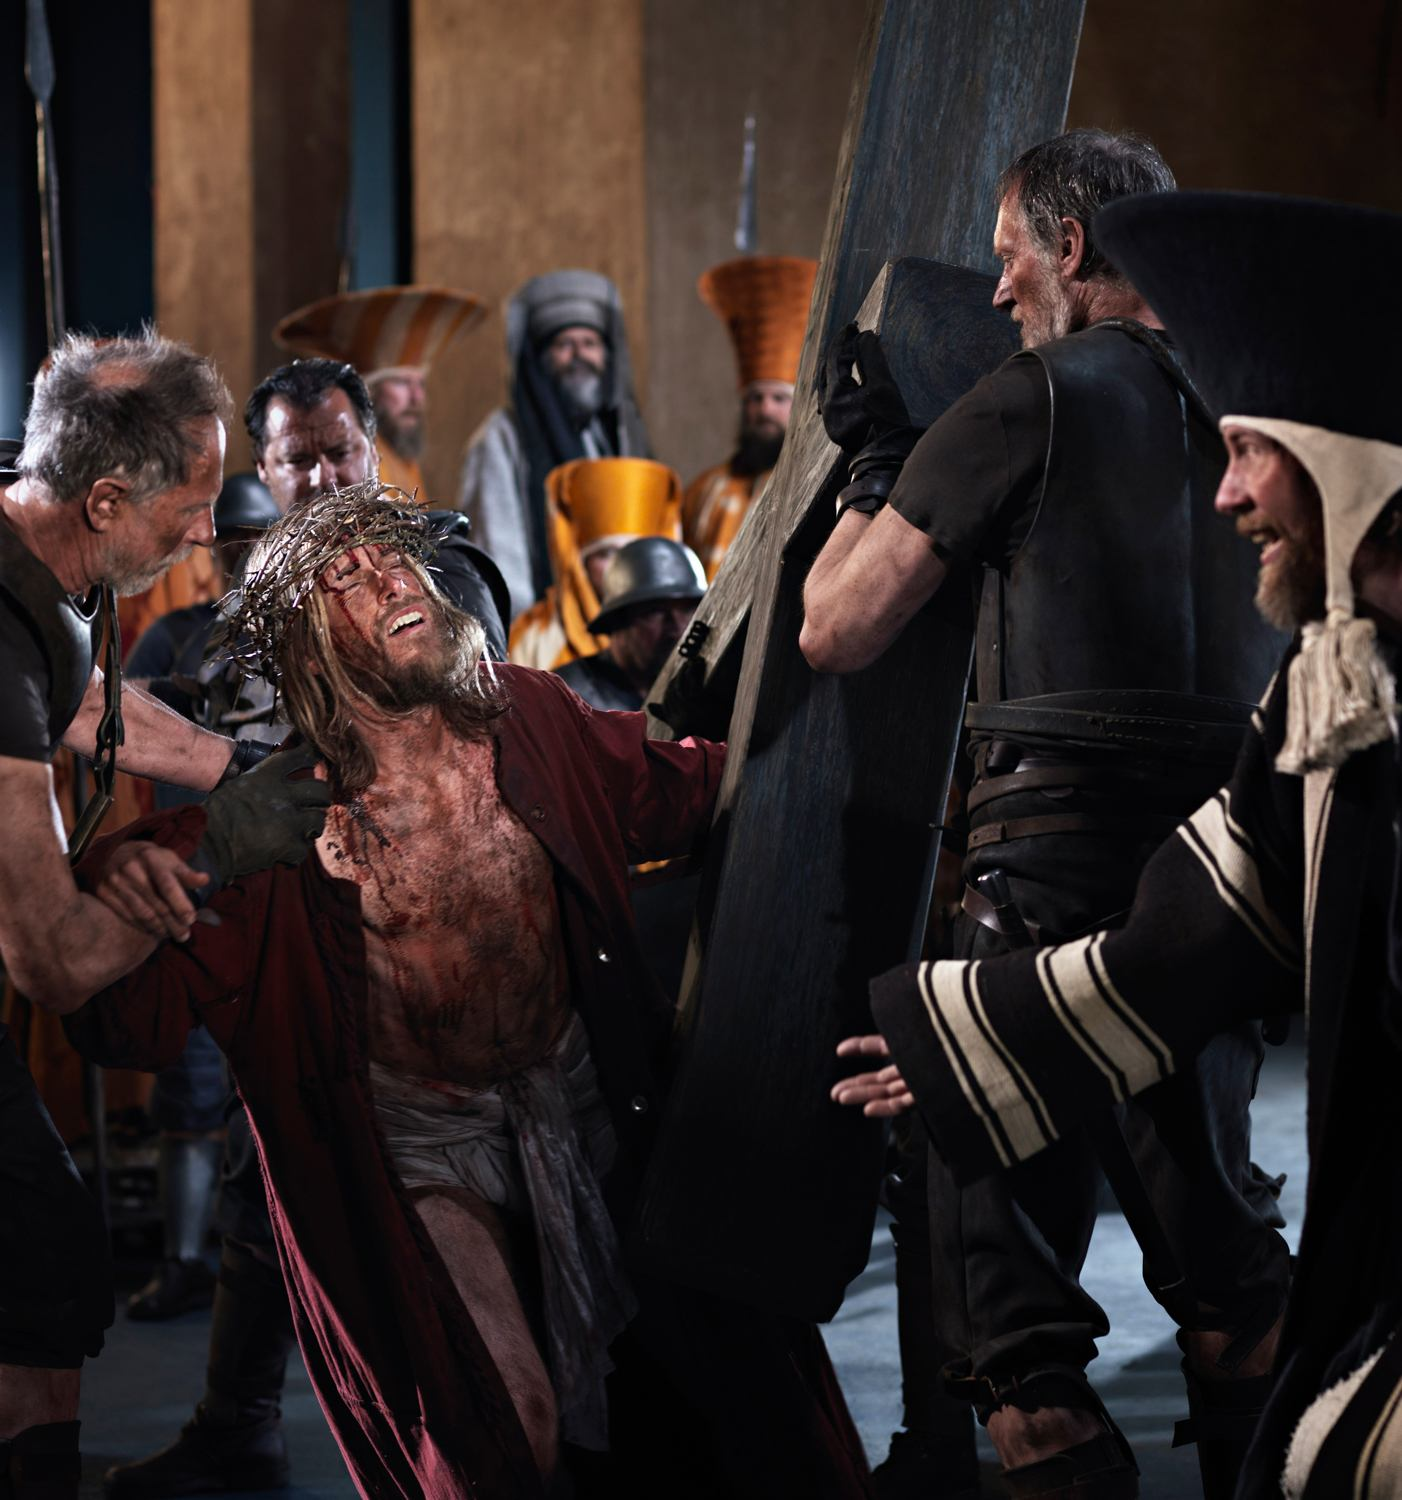 Way of the Cross - Oberammergau Passion Play 2020 Photos: Oberammergau Passion Play 2020